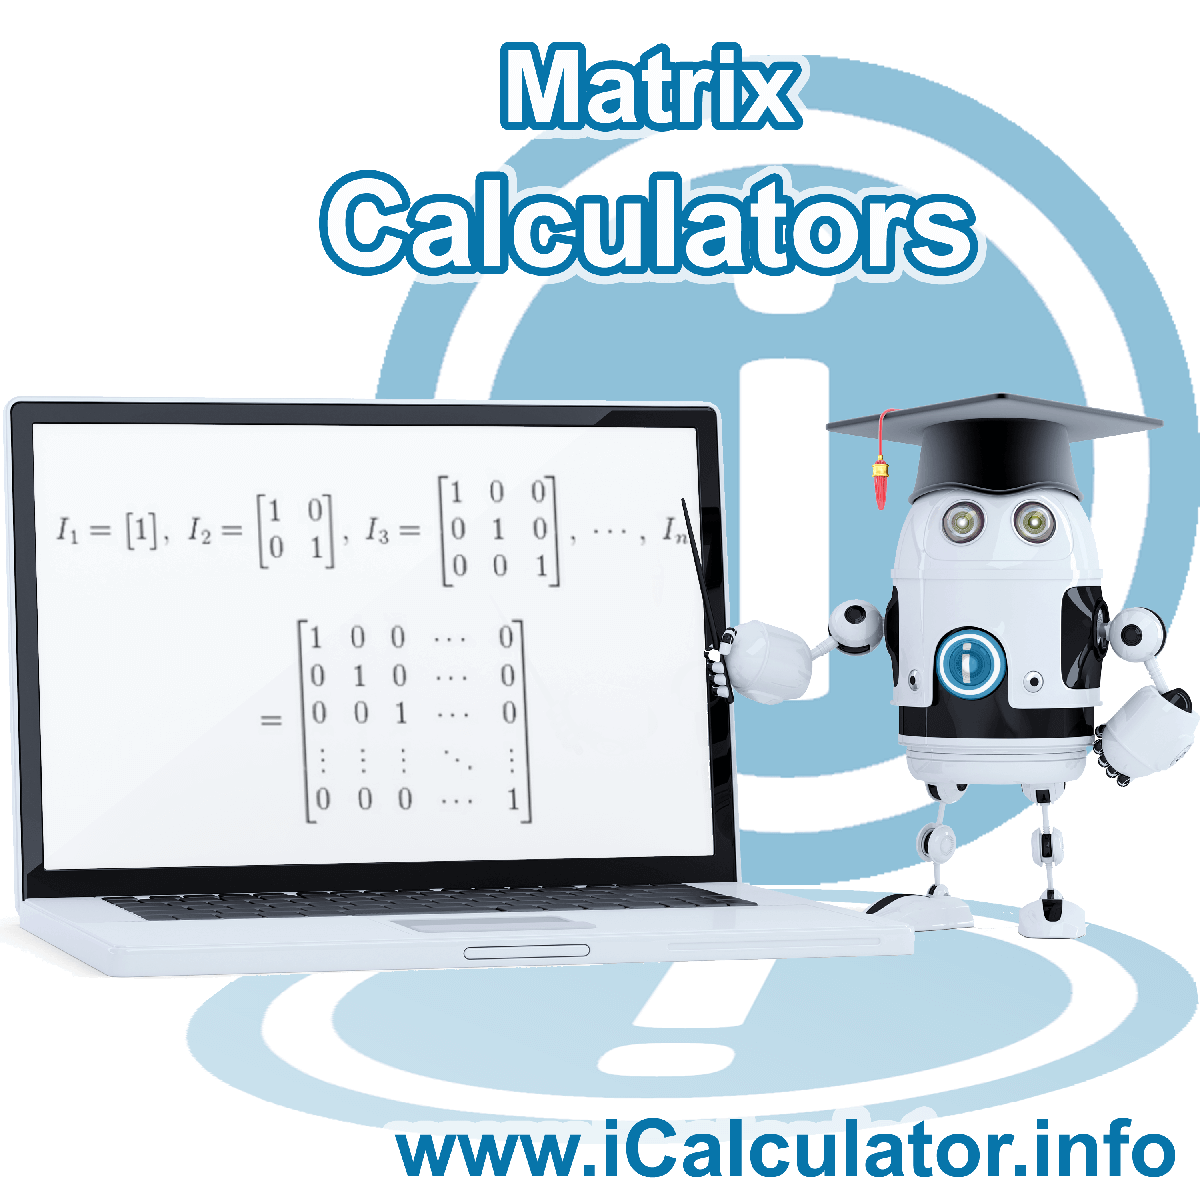 Matrix Calculators. This image shows the mathMatrix formula for the matrix formuals used in the Matrix Calculators on iCalculator